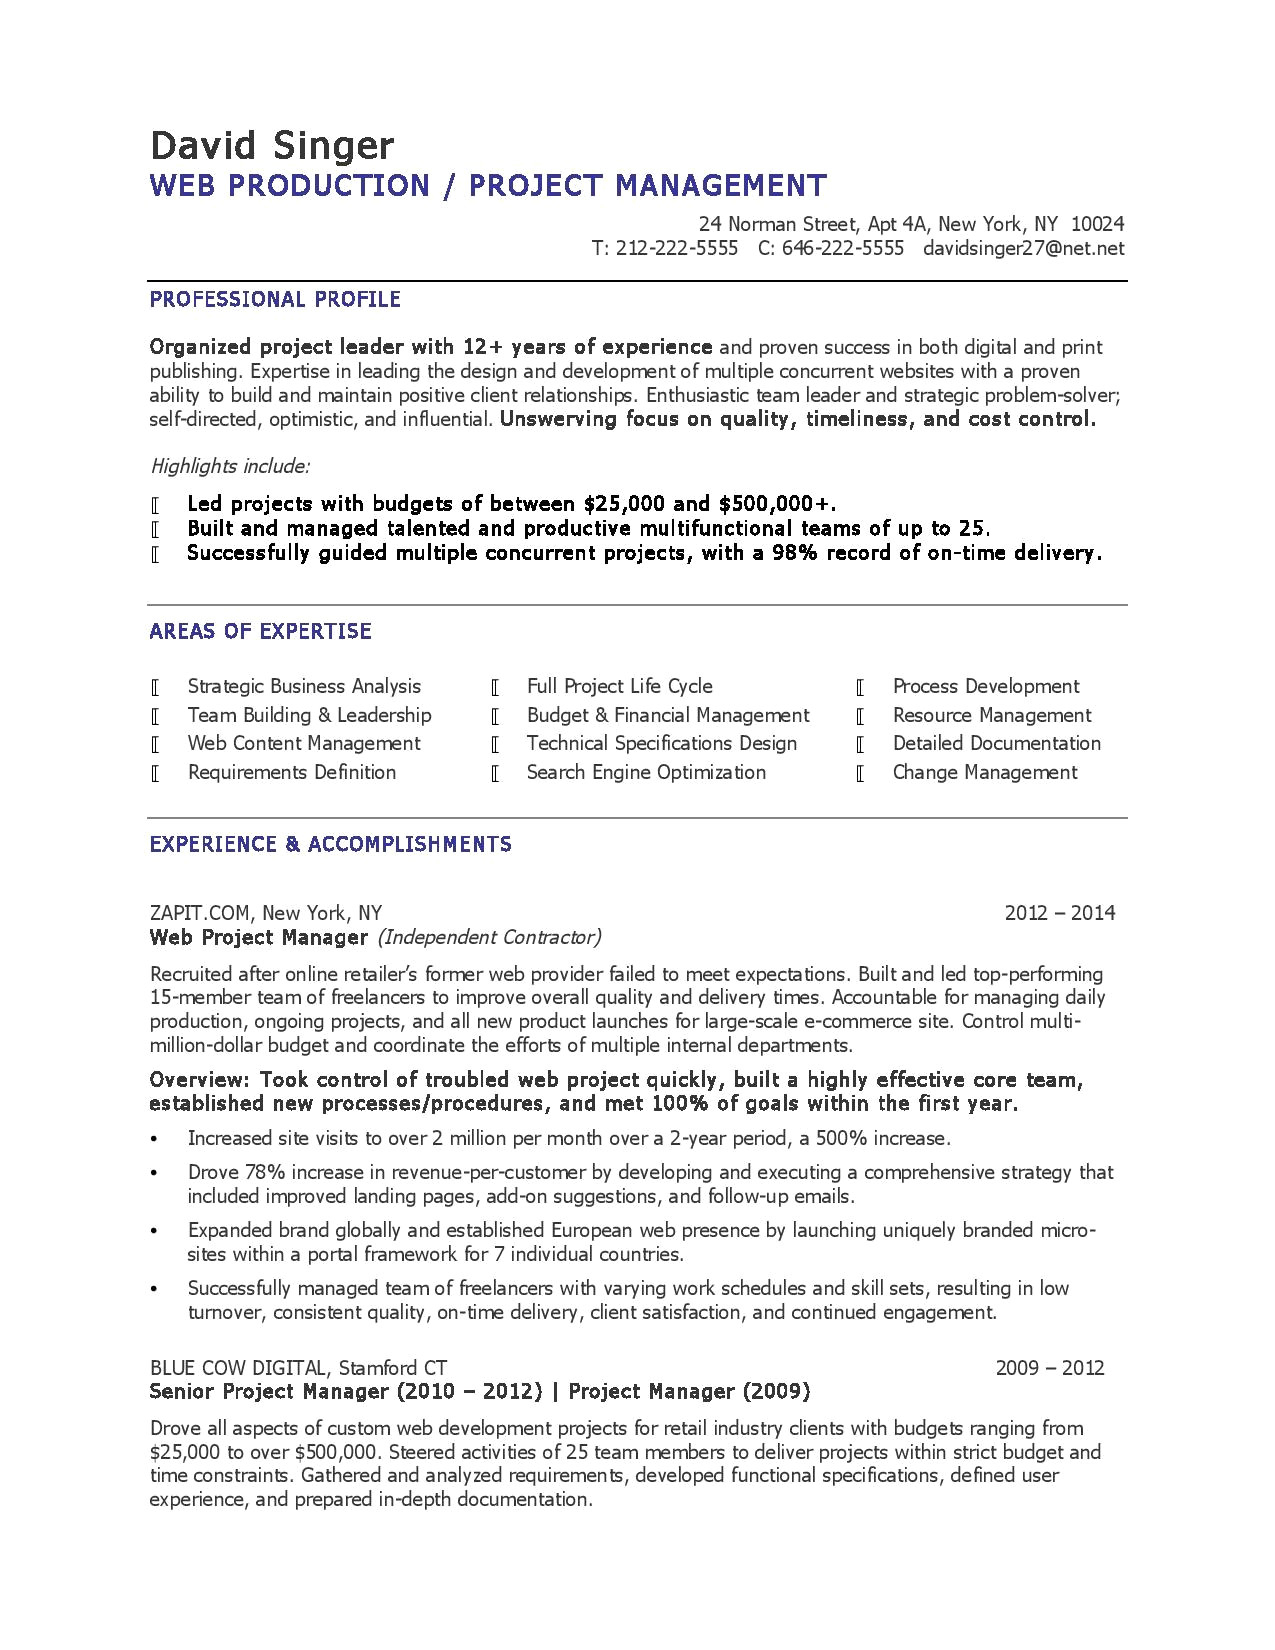 project manager resume example-Related Post program manager resume sample concerning 1-n